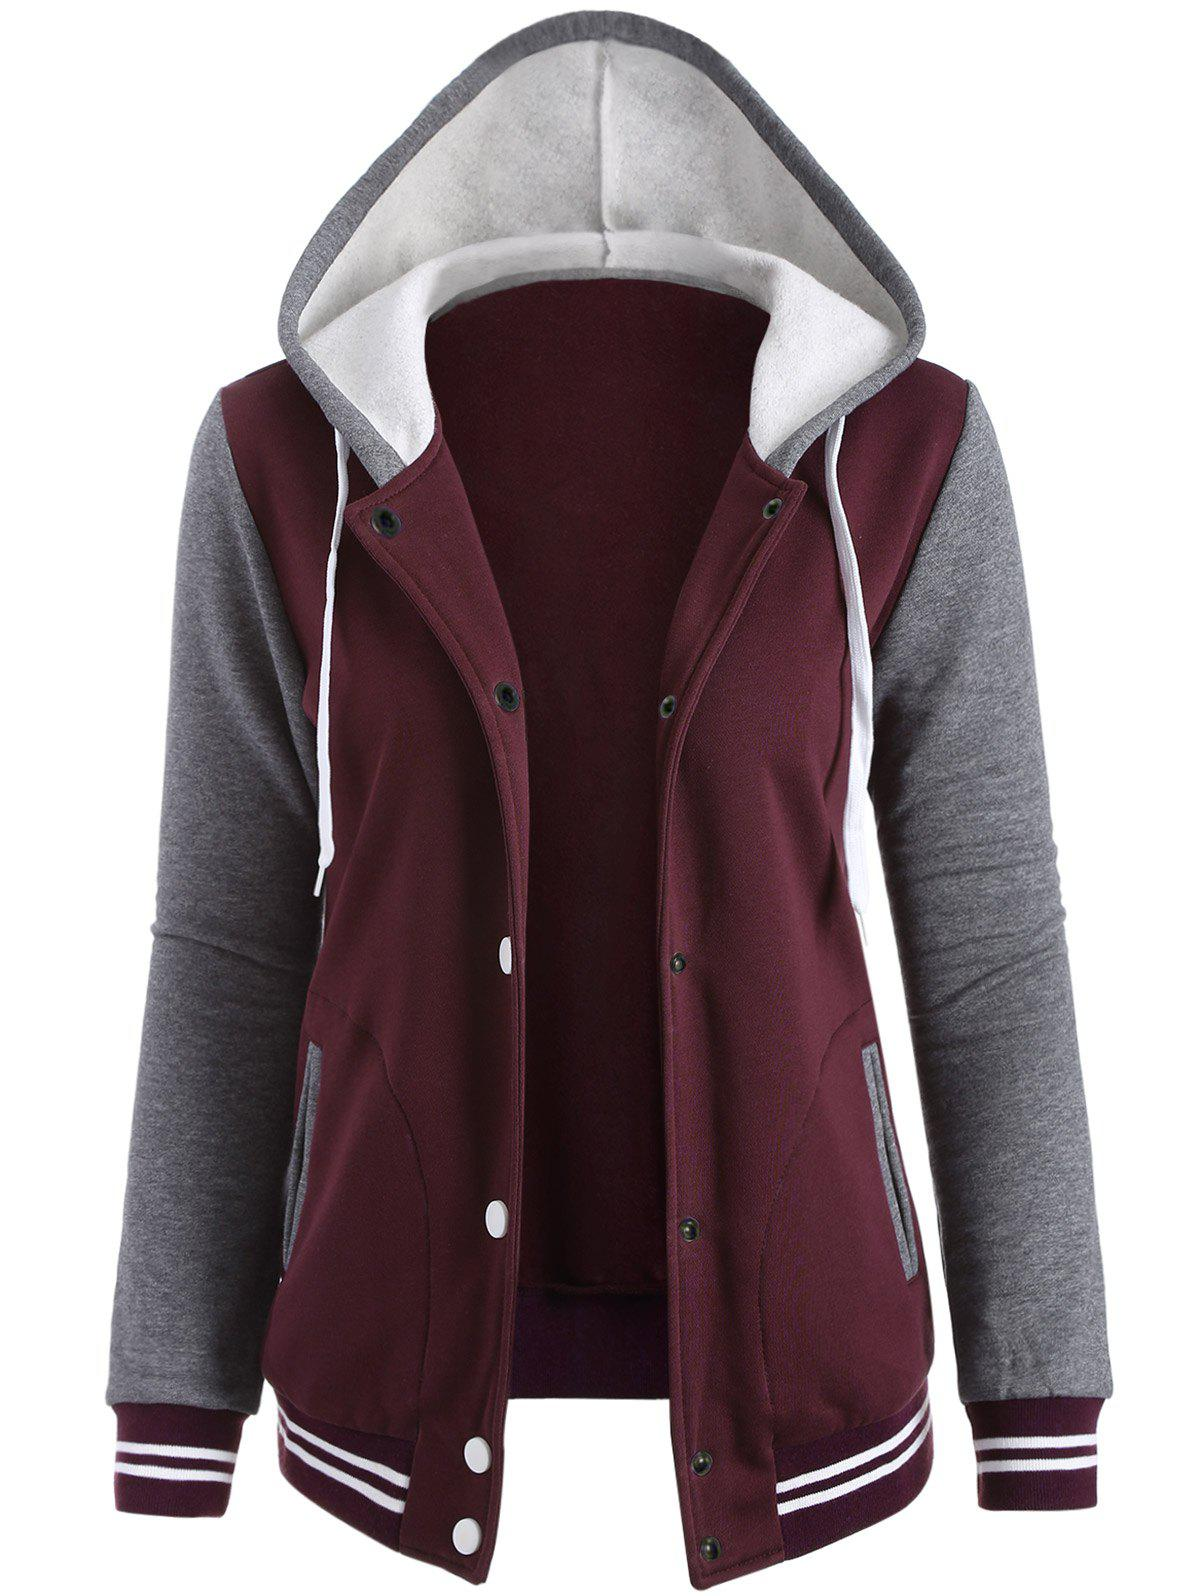 Contrast Sleeve Fleece Baseball Hoodie Jacket - WINE RED M